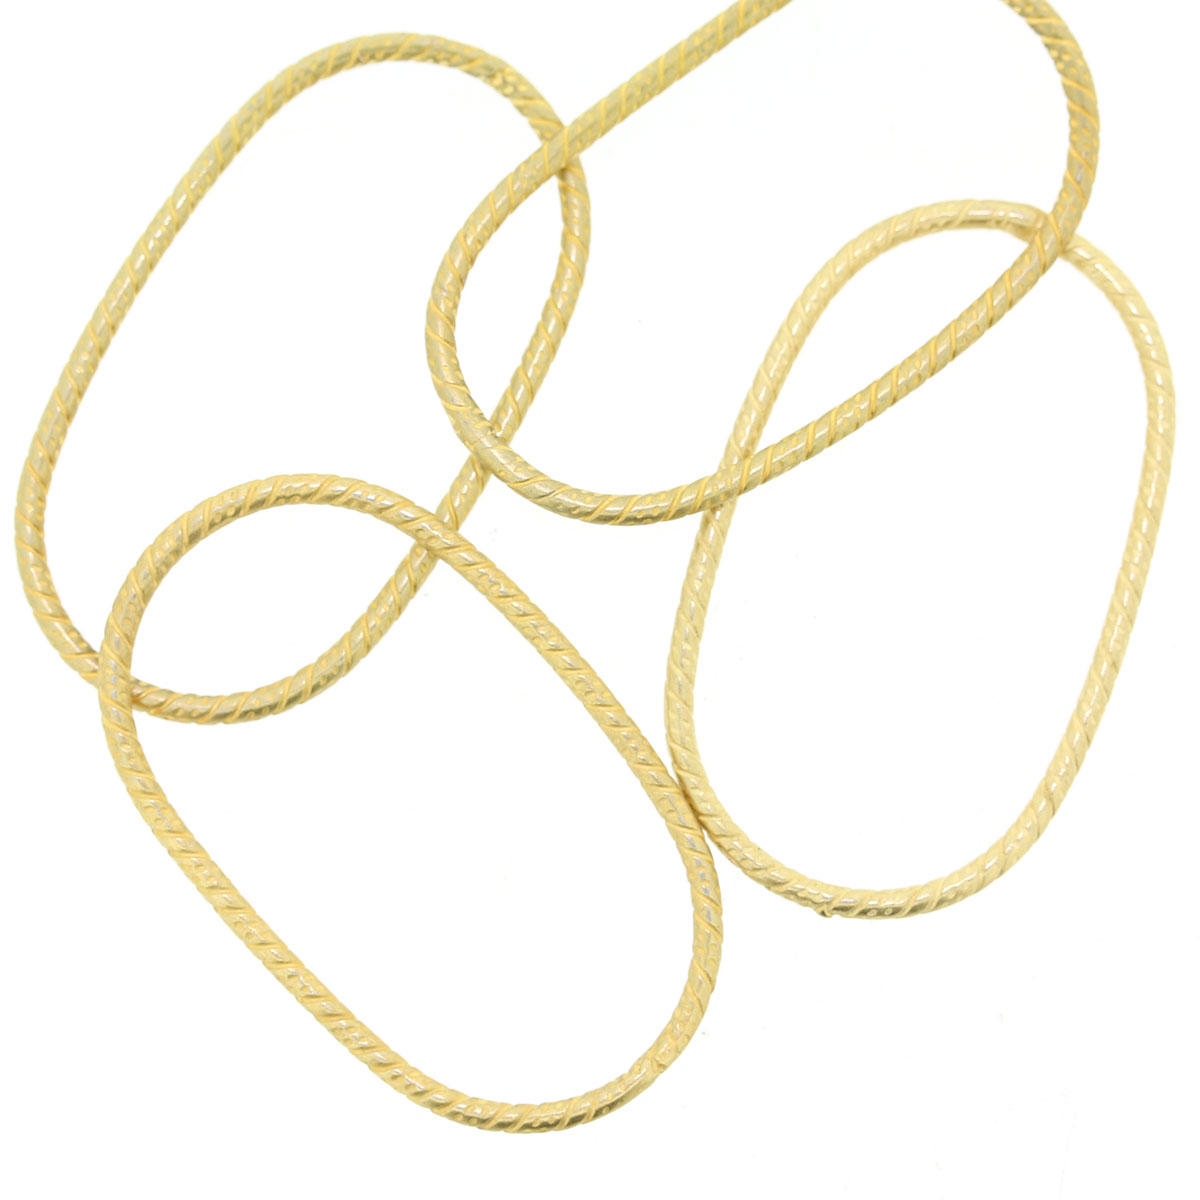 Gold Patterned Oval Loop Connector